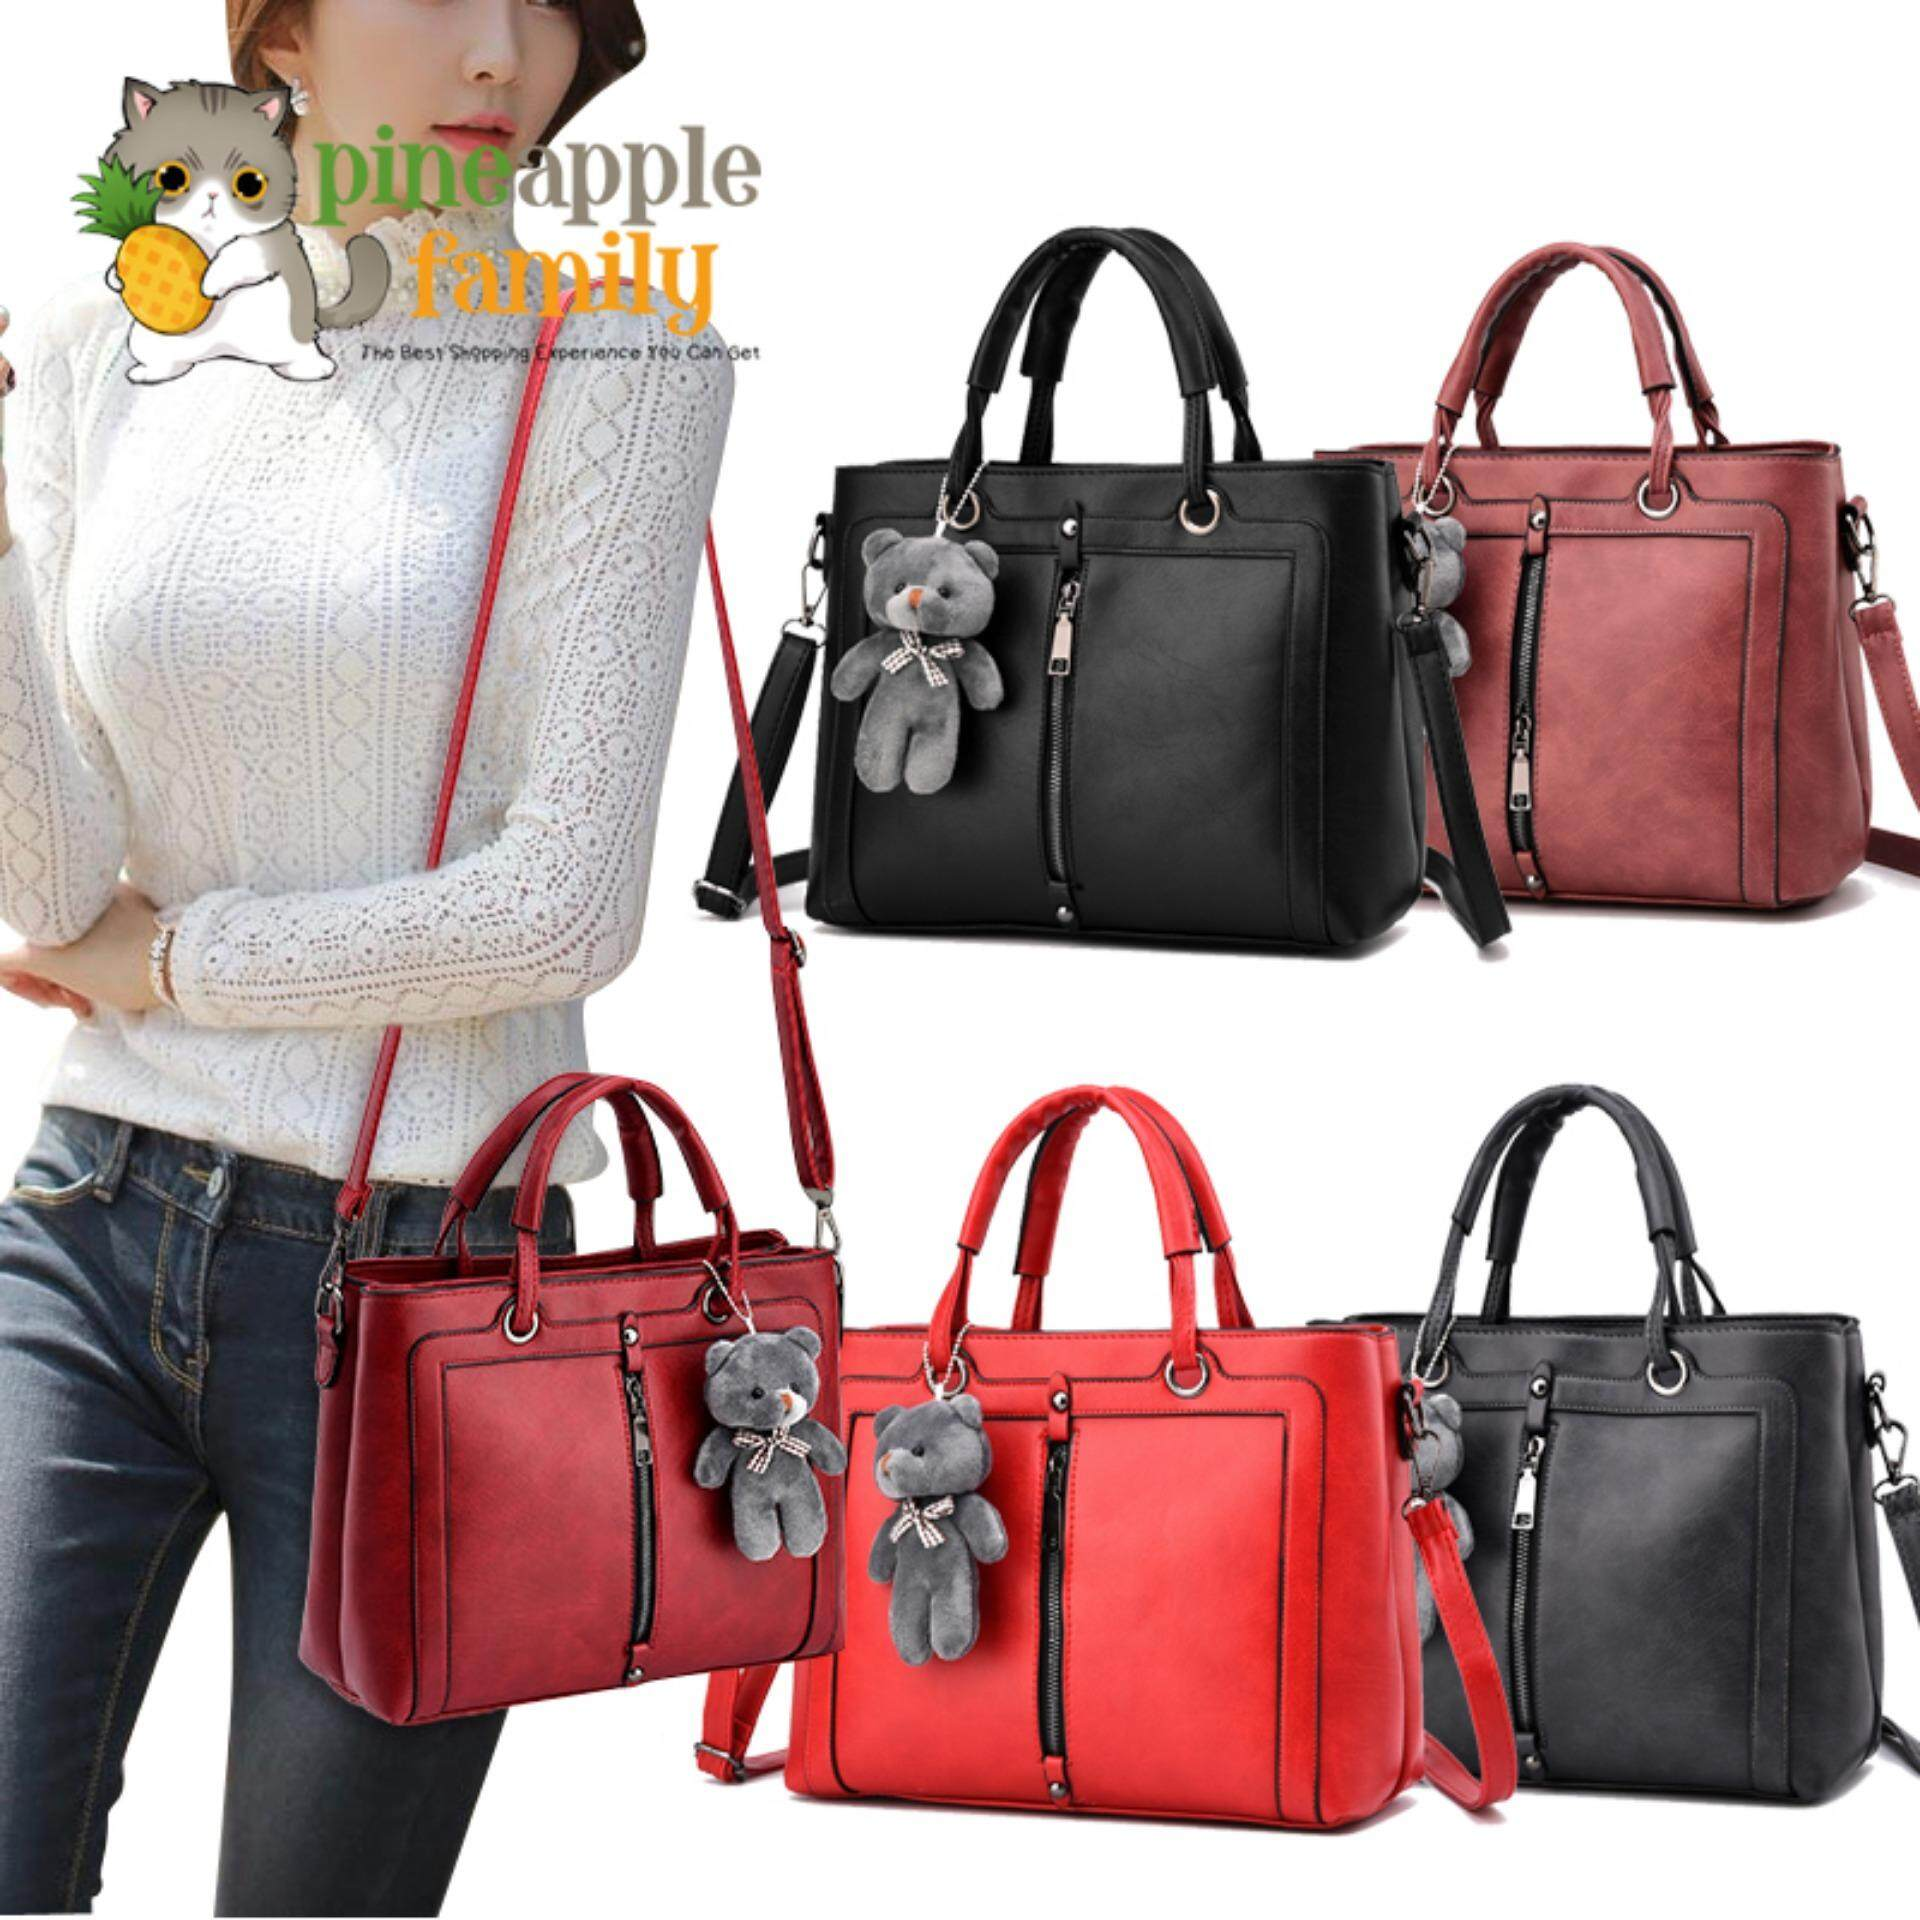 a784c50b3745 Women Bags - Buy Women Bags at Best Price in Malaysia